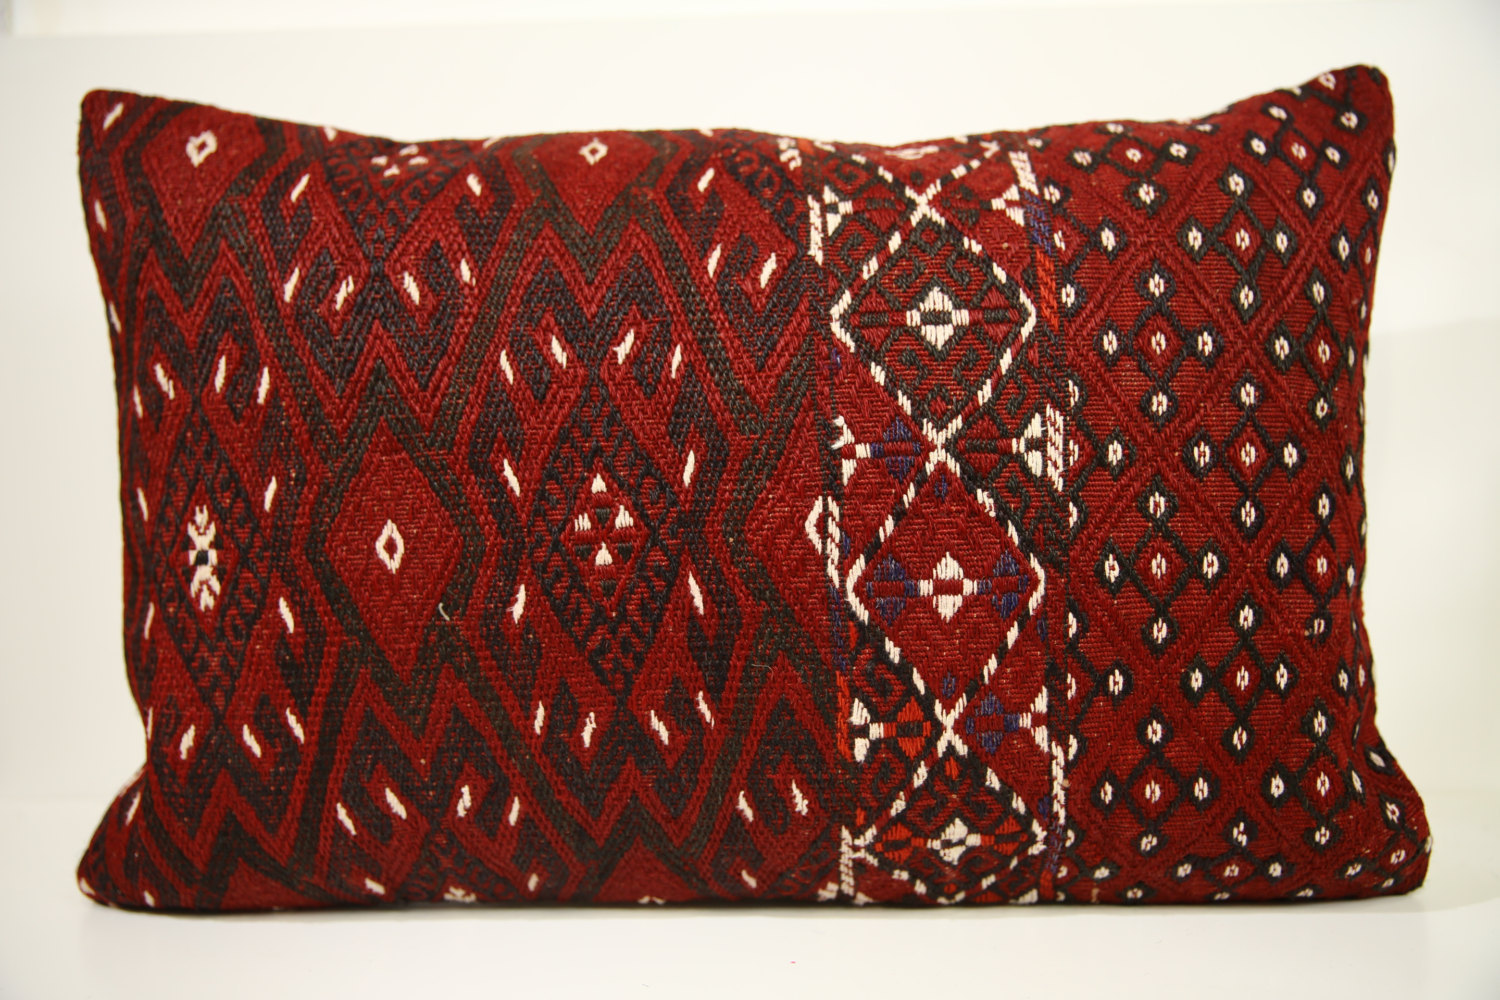 Turkish Kilim Throw Pillows : Kilim Pillows 24x16 Lumbar pillows 1468 Turkish pillows , throw pillows - Pillows